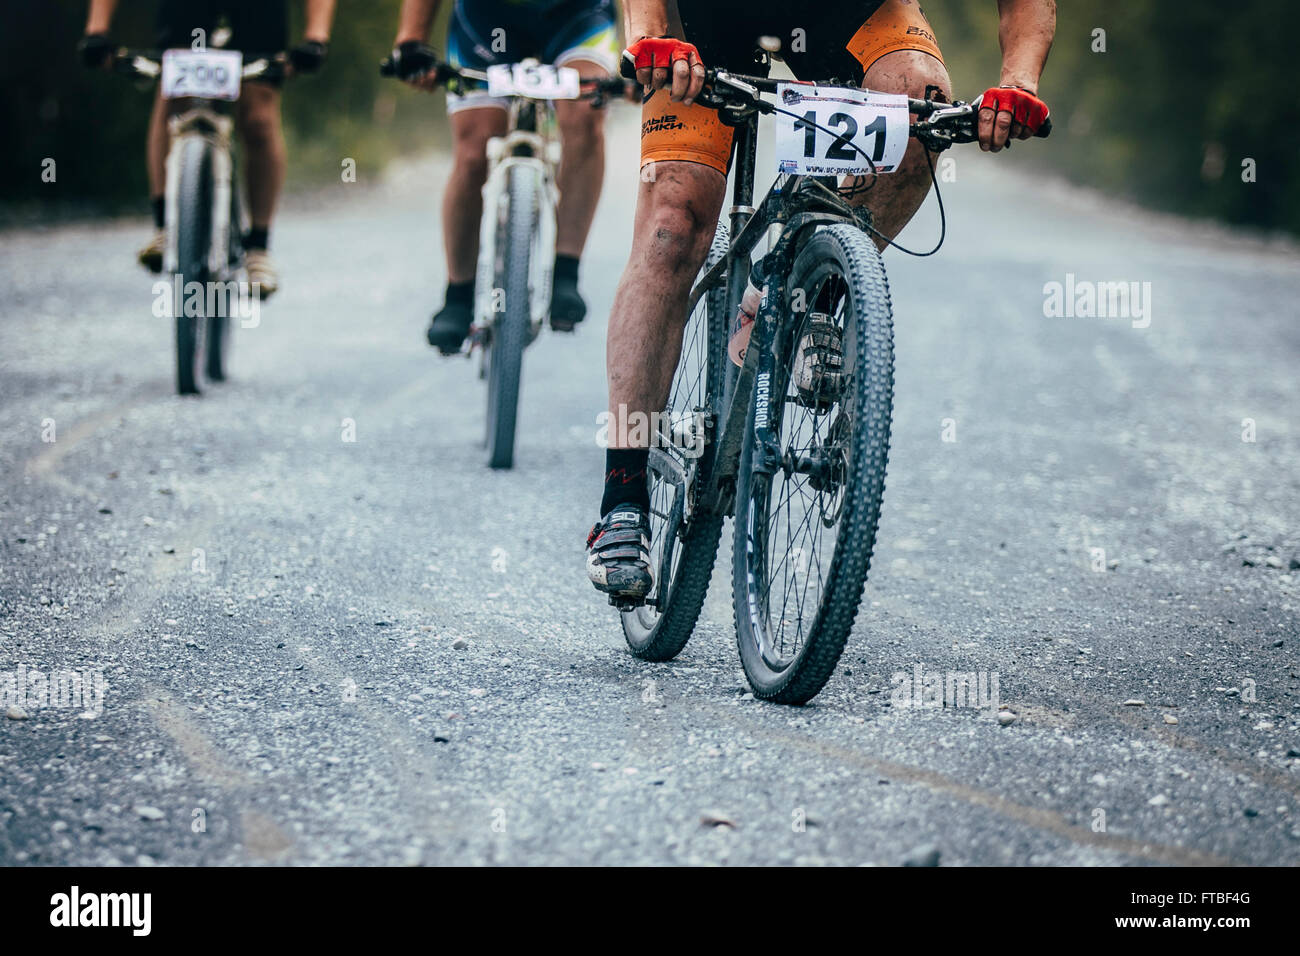 V.Ufaley, Russia - August 09, 2015:   group mountain bikers turns gravel road during race 'Big stone' - Stock Image